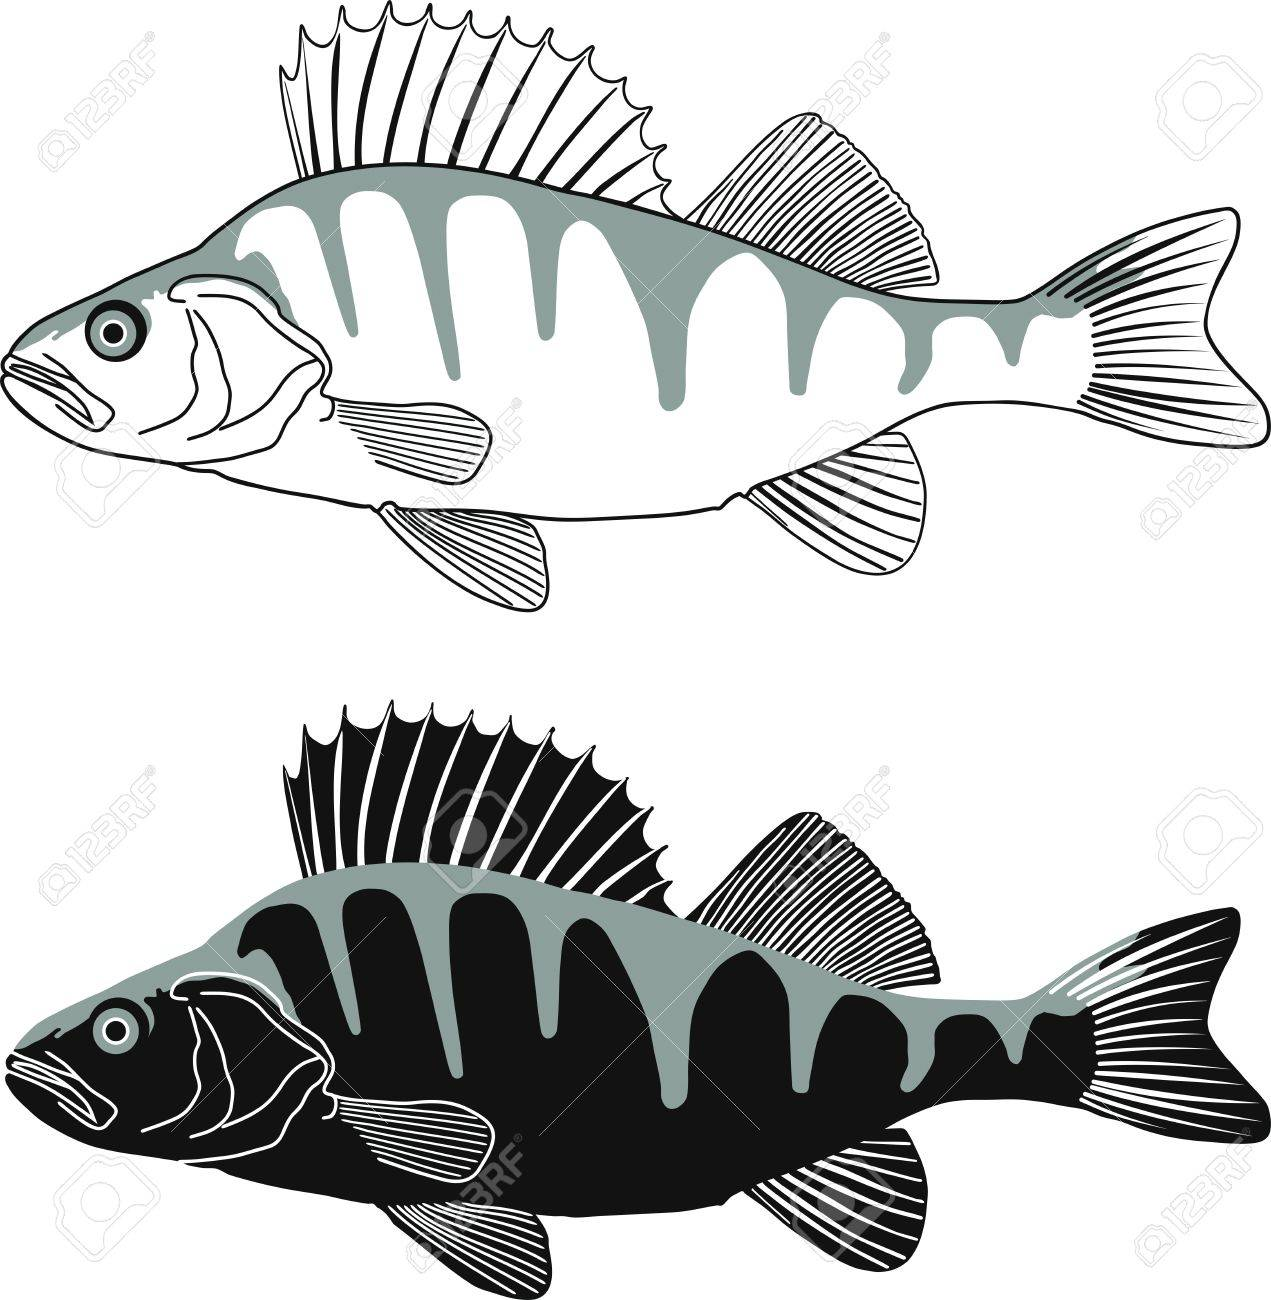 black and white illustration perch isolated vector royalty free rh 123rf com Fish Skeleton Perch Fish Clip Art Black and White